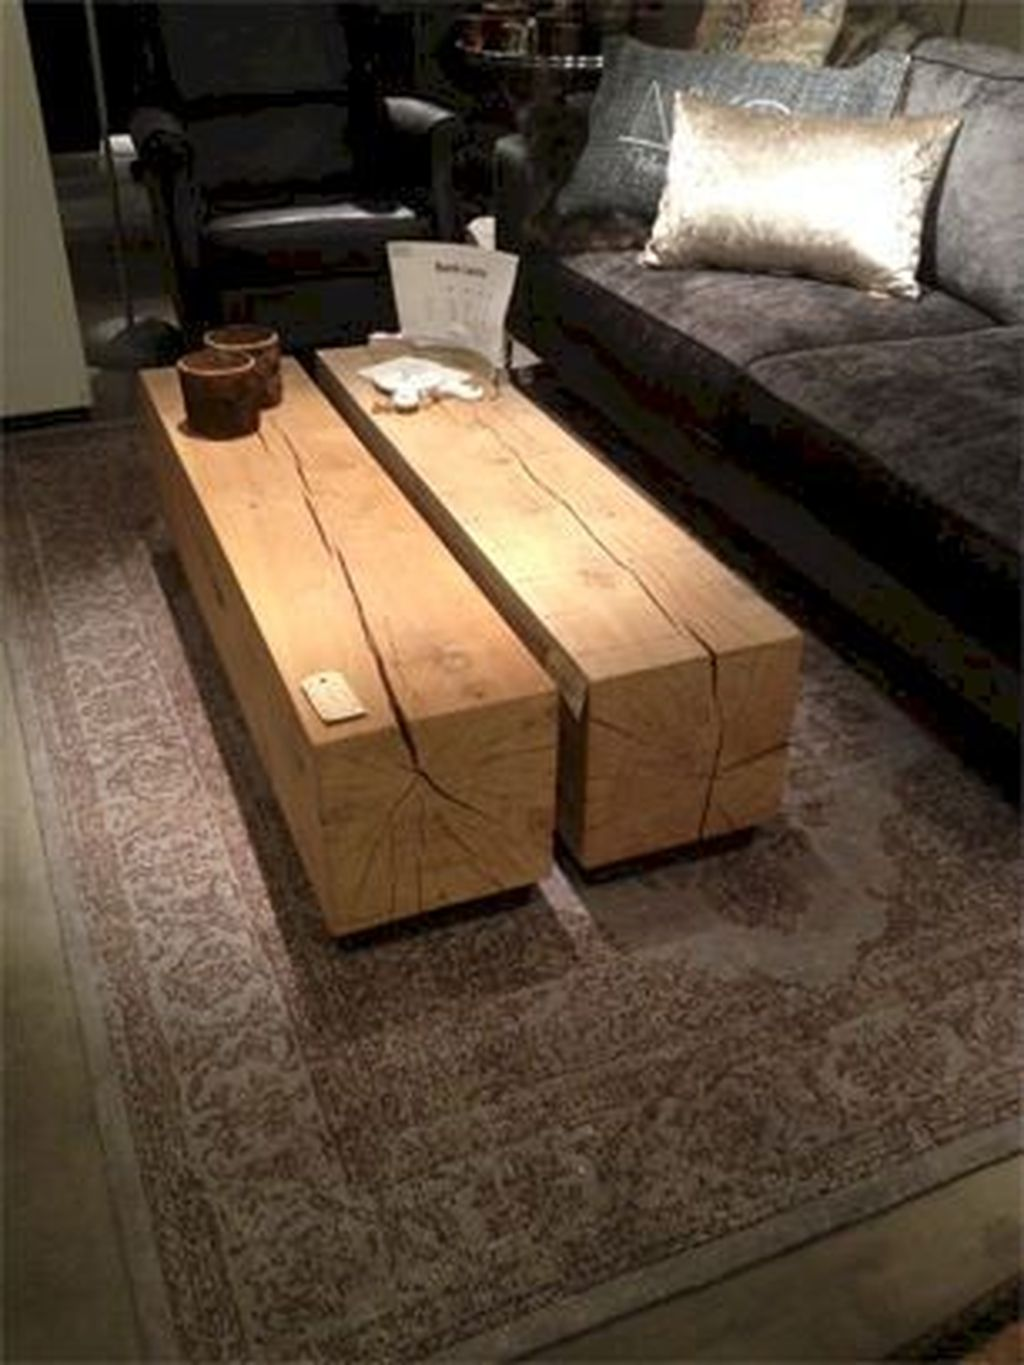 Best Wooden Furniture Design Ideas To Decorate Your Home 27